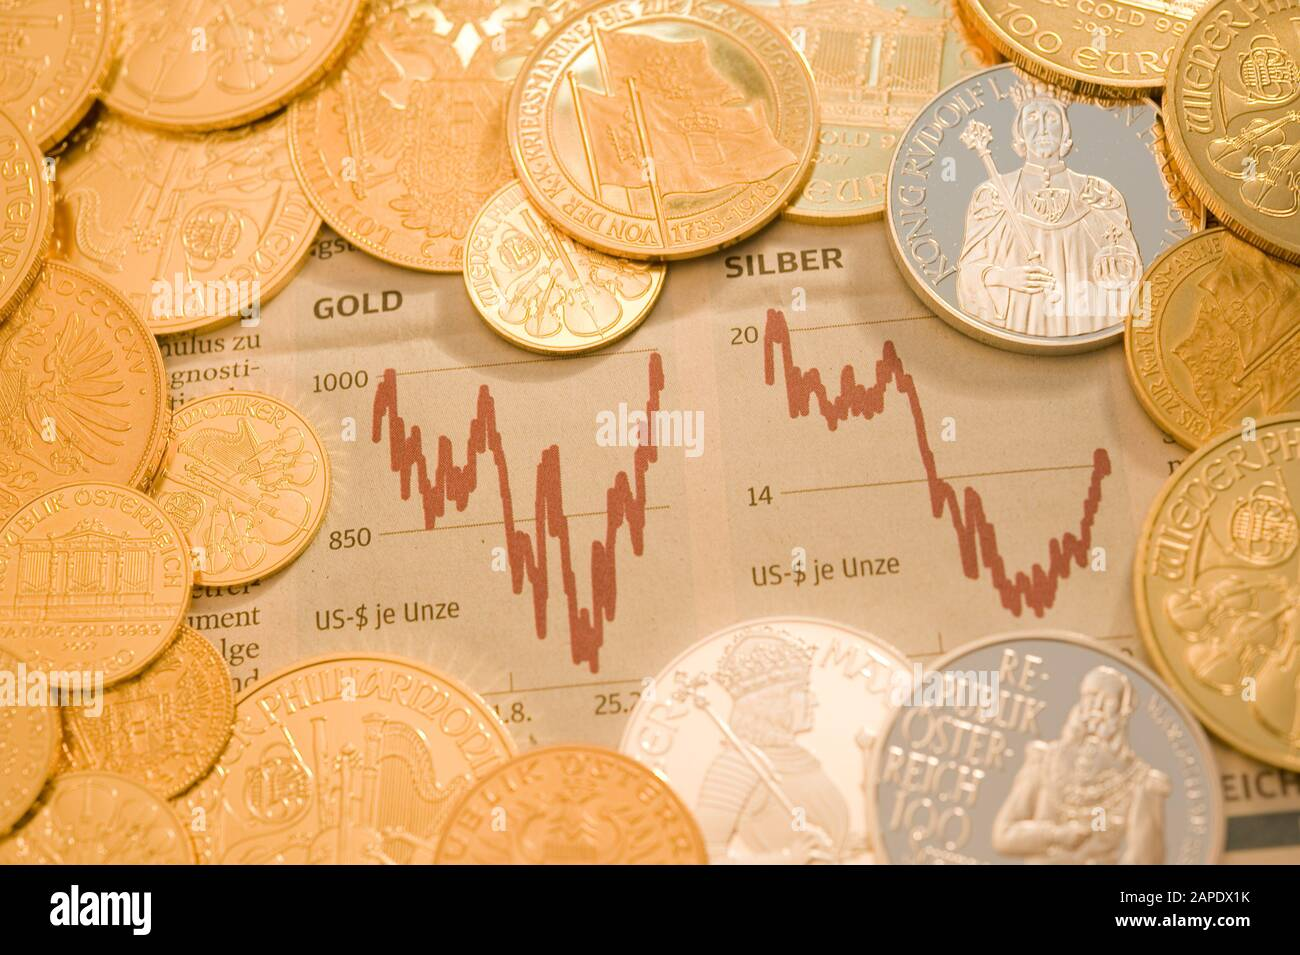 Gold- und Silbercharts - Gold and Silver Charts Stock Photo